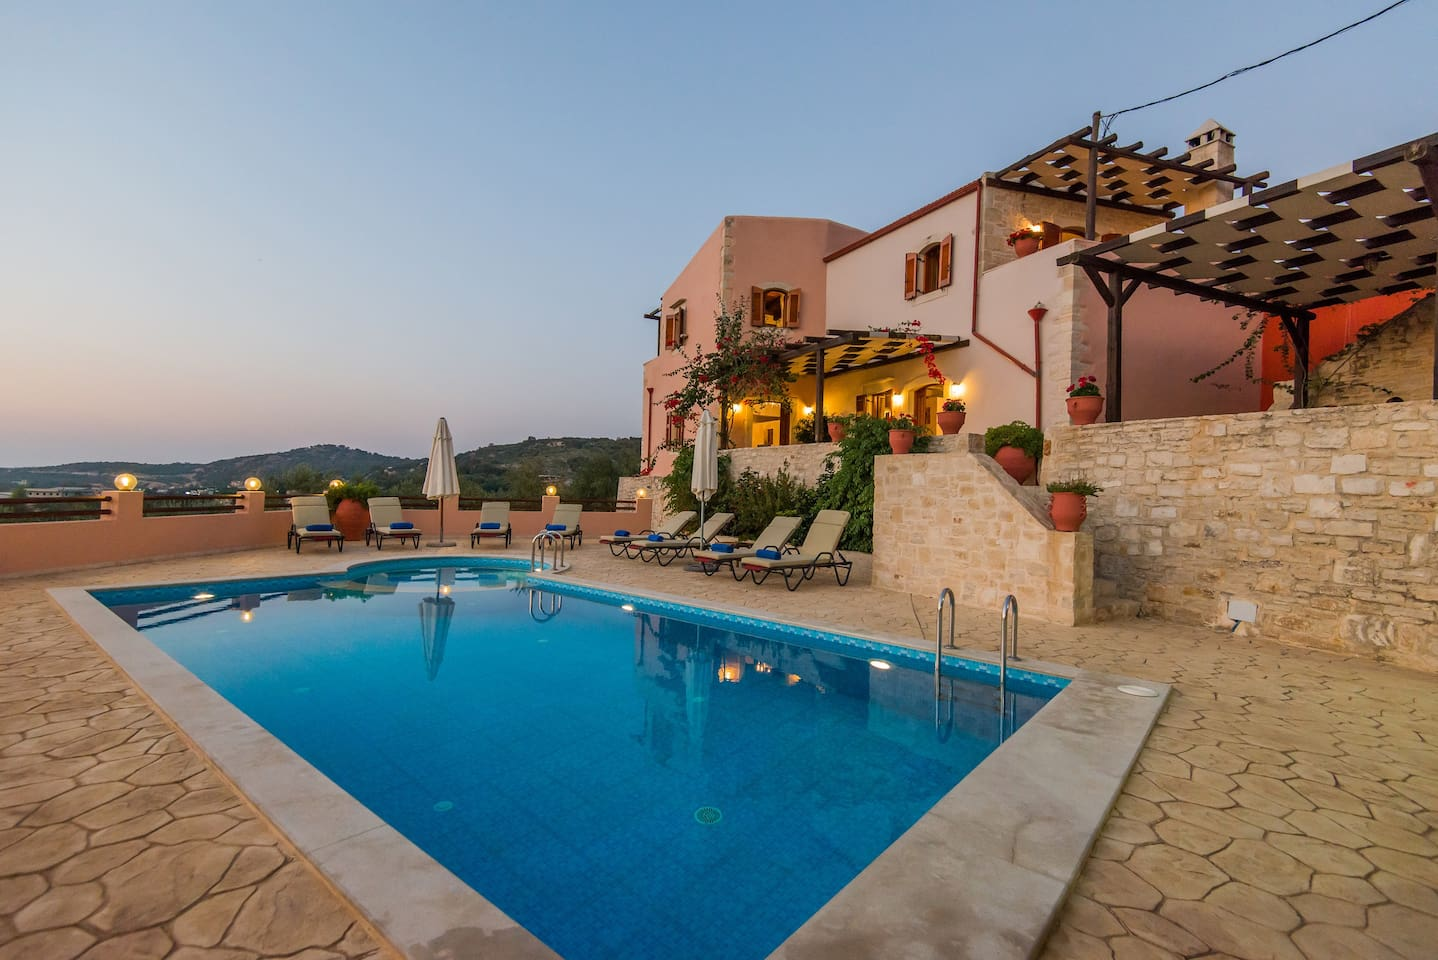 Villa Dafni has a private swimming pool and a stone paved terrace.